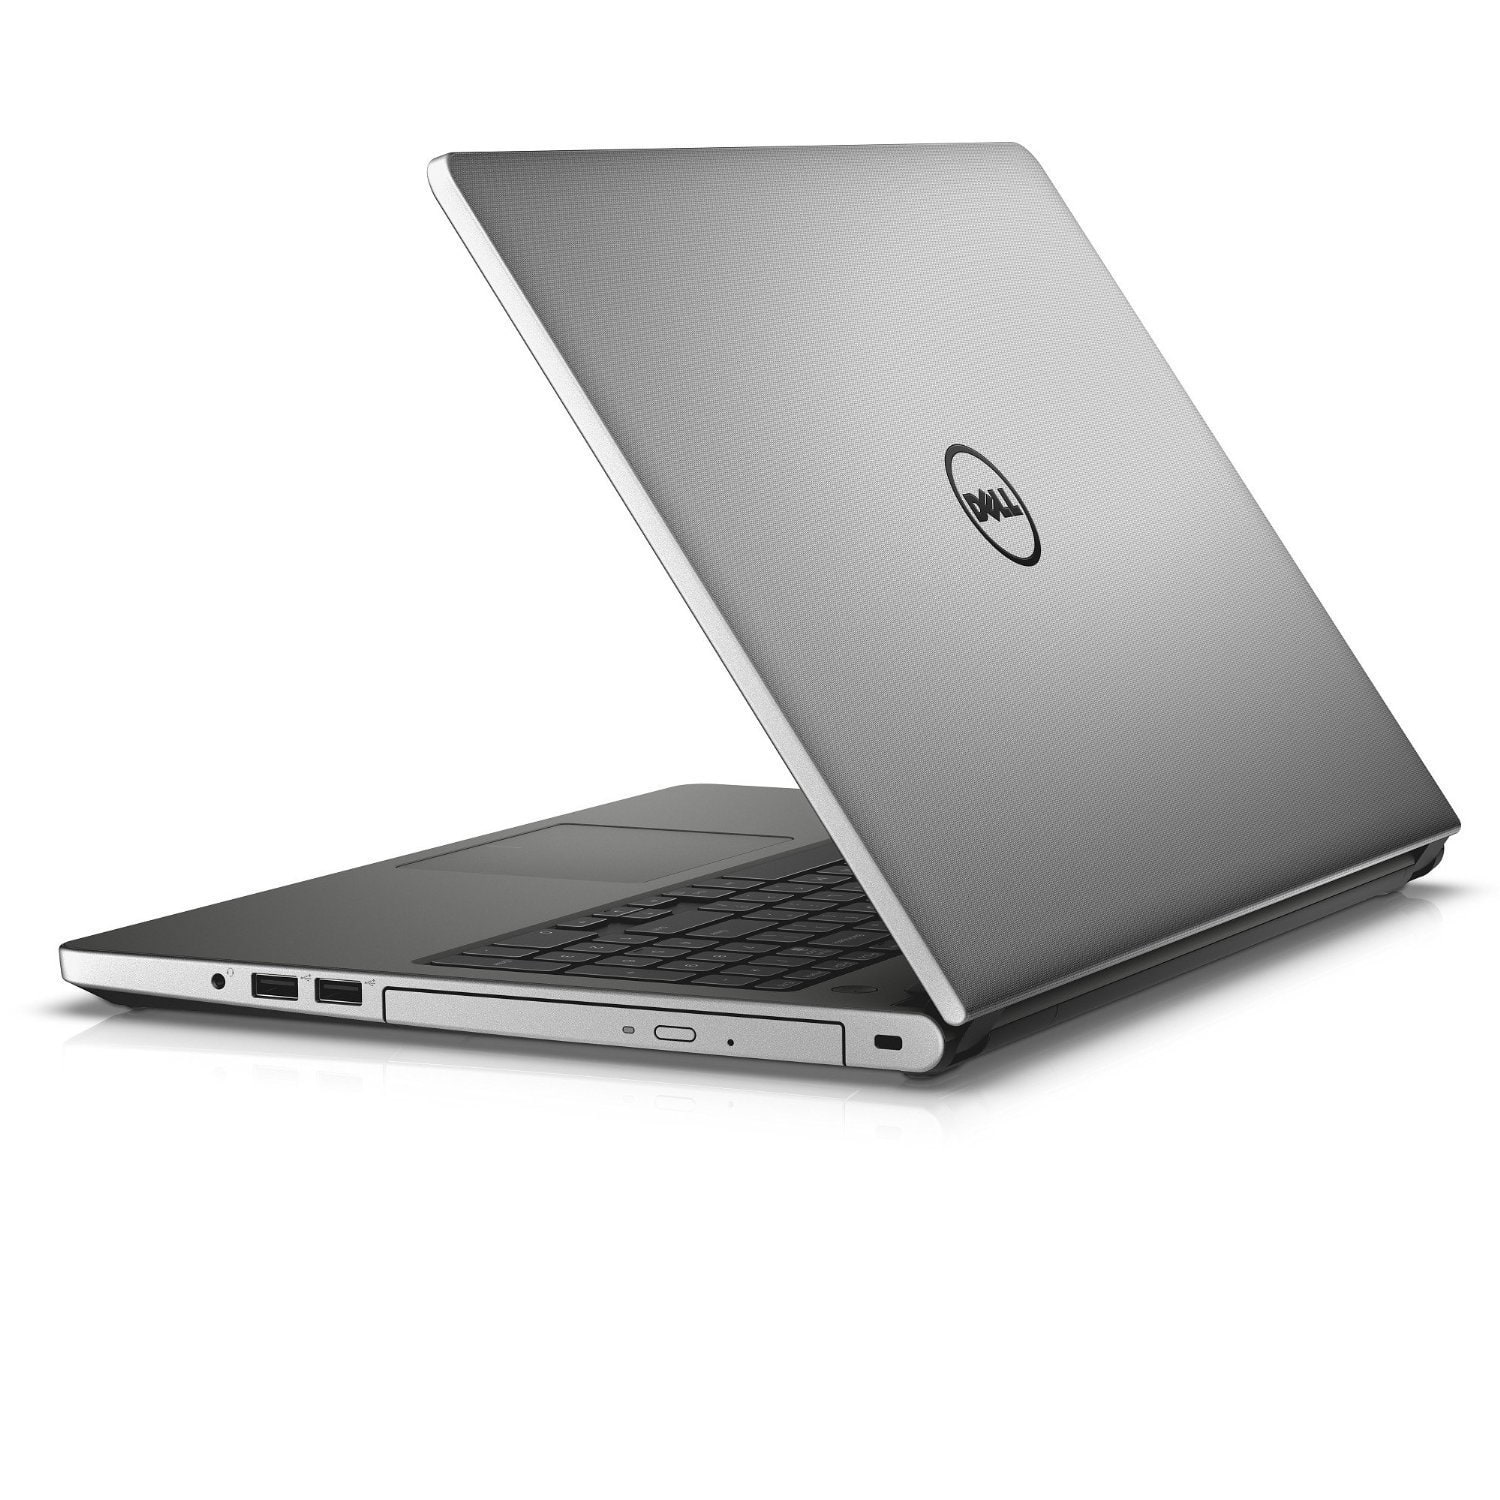 "Dell Inspiron Touch Laptop: Core i3-4005U 1.7GHz, 6GB DDR3, 1TB HDD, 15.6"" LCD (1366x768), Win 10  $250 After $125 Rebate + Free S/H"